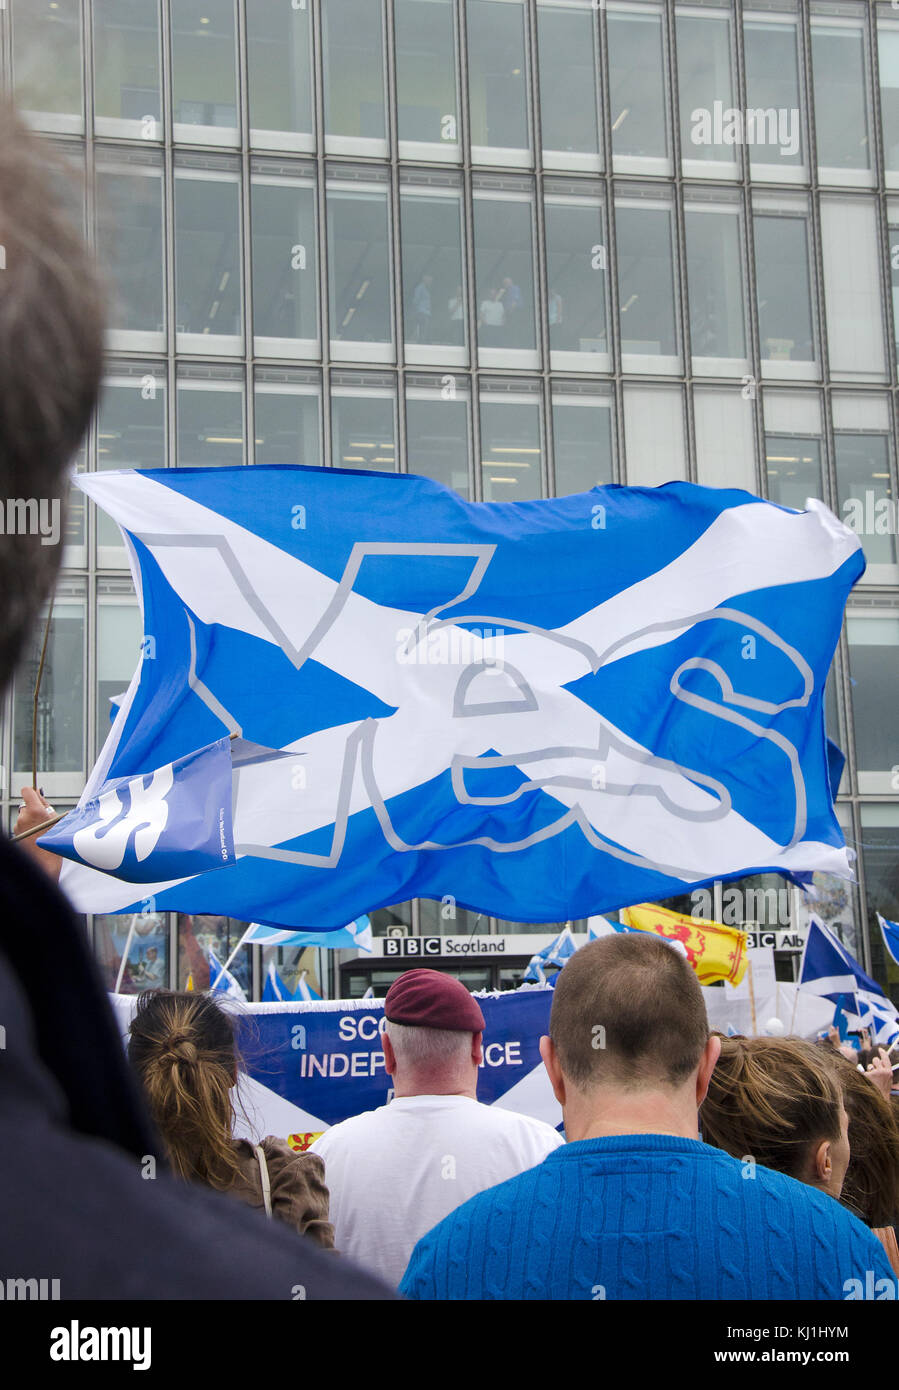 GLASGOW, SCOTLAND- SEPTEMBER 14 2014: Protest at the BBC Scotland HQ during the Scottish Independence Referendum Stock Photo